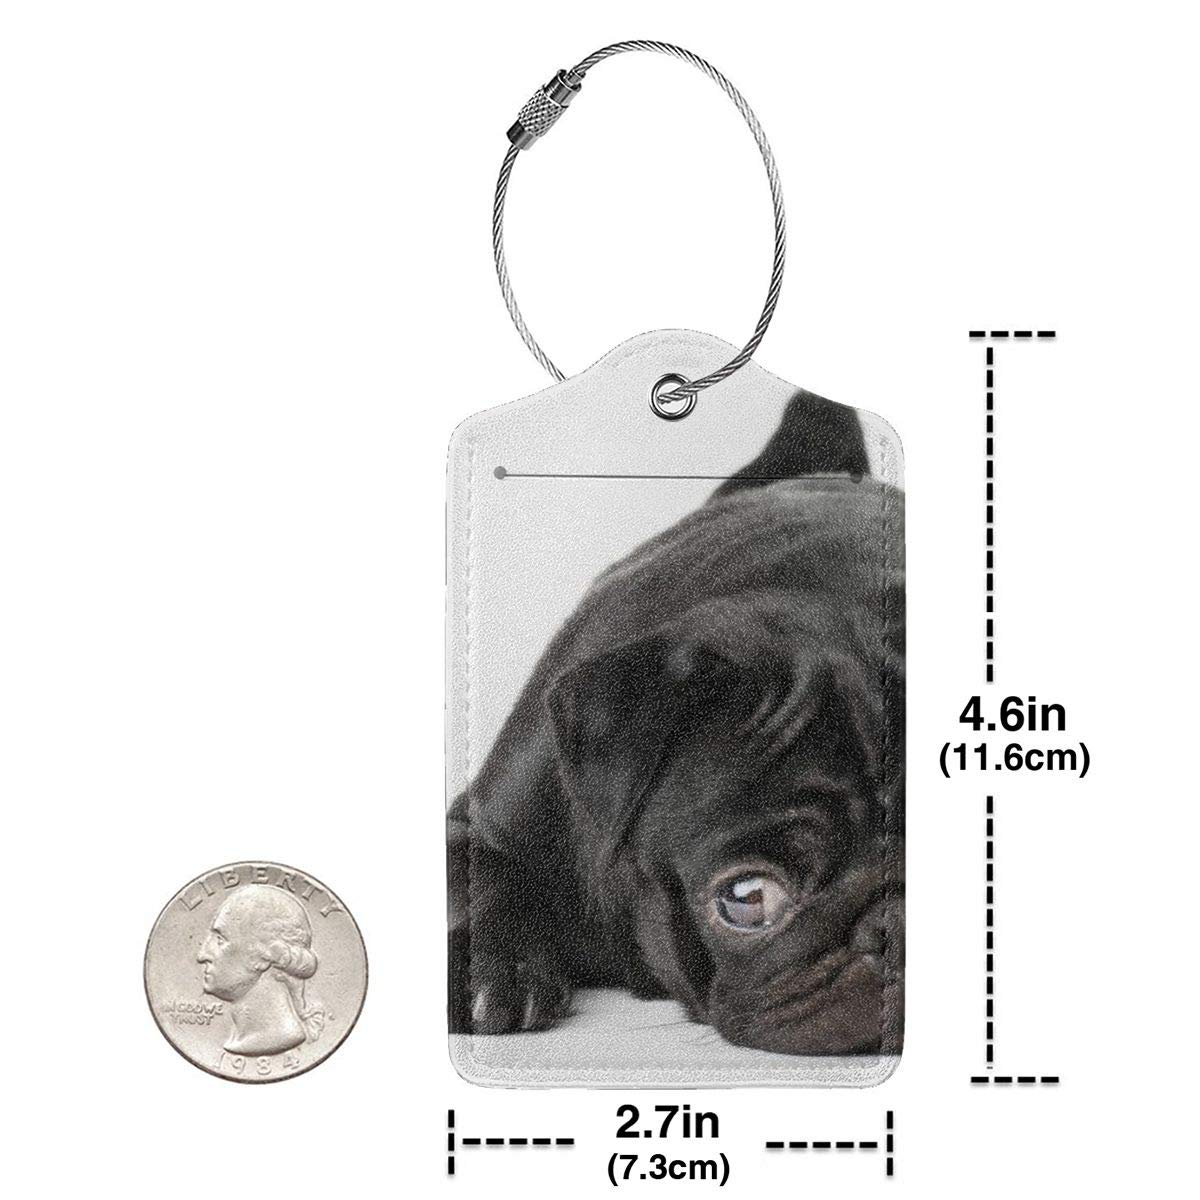 Black Pug Dog Travel Luggage Tags With Full Privacy Cover Leather Case And Stainless Steel Loop